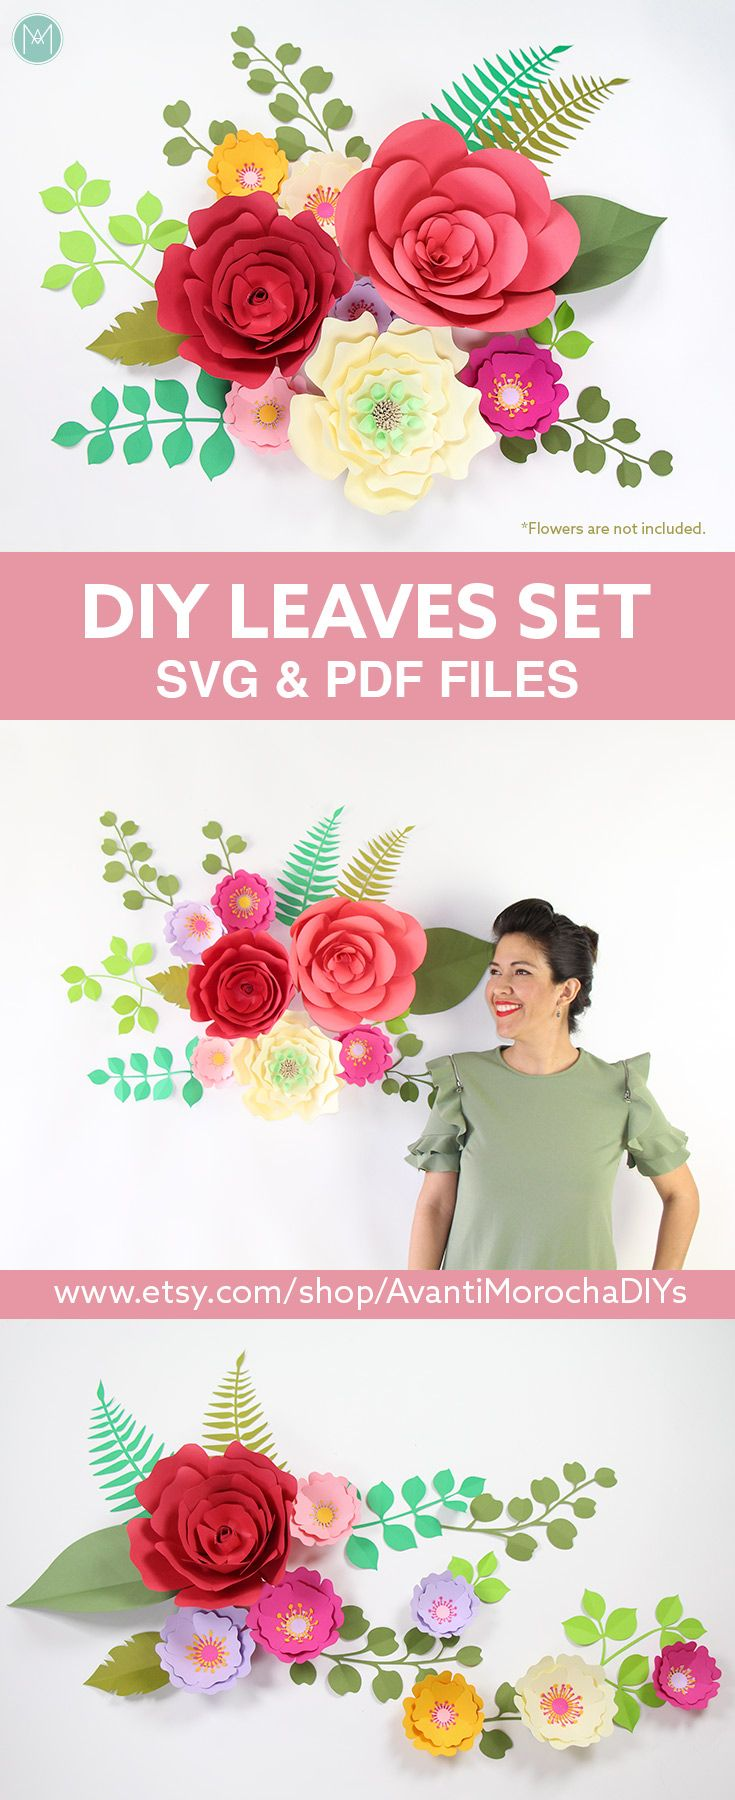 DIY Giant Paper Flowers - Leaves set | SVG and PDF files. Set de hojas de flores gigantes.